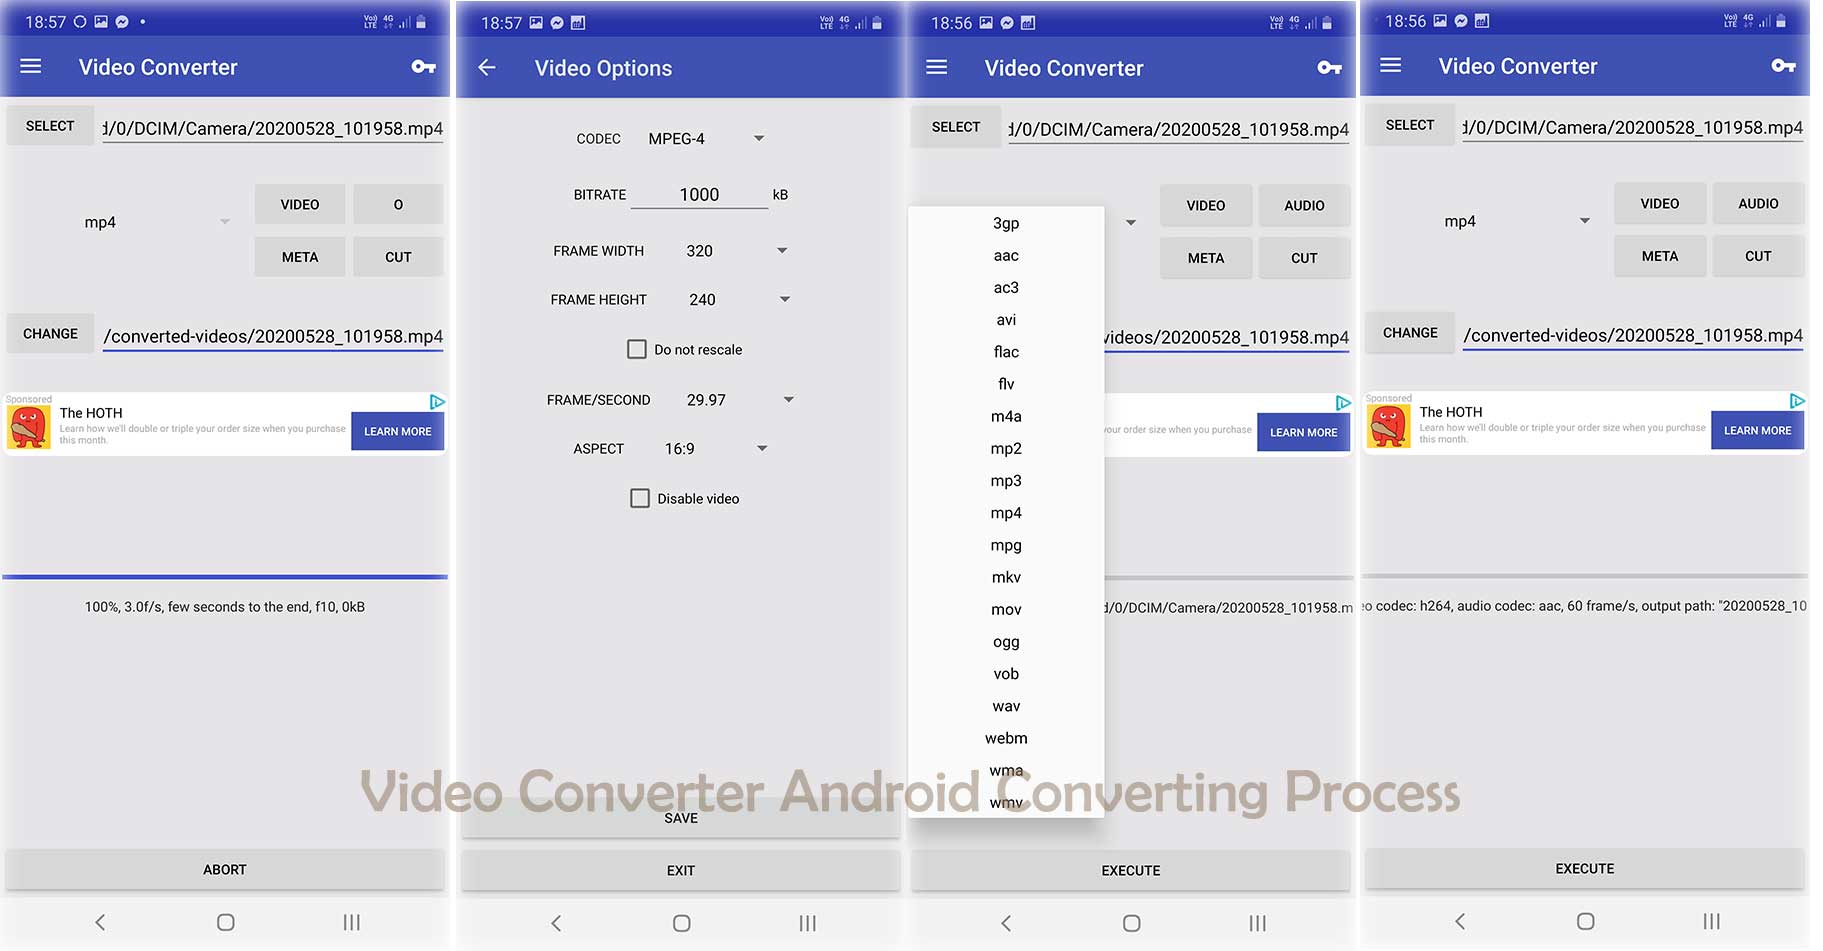 Icon of Video Converter Android